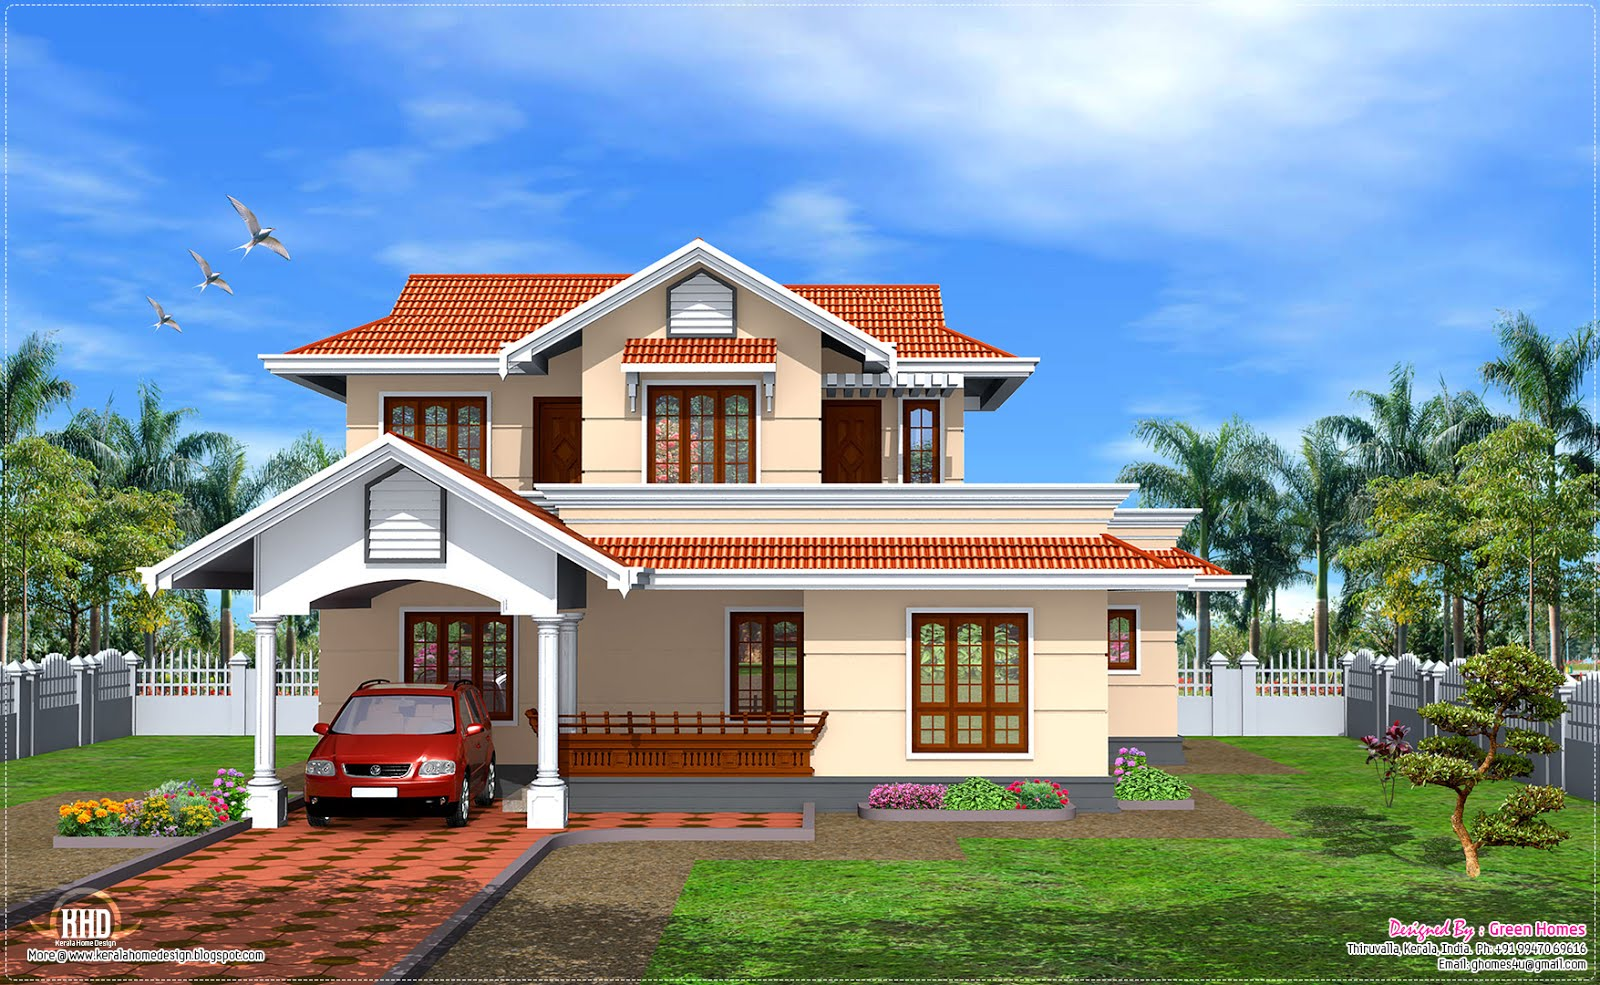 Kerala Model 1900 Sqfeet Home Design on Design Luxury House Floor Plans